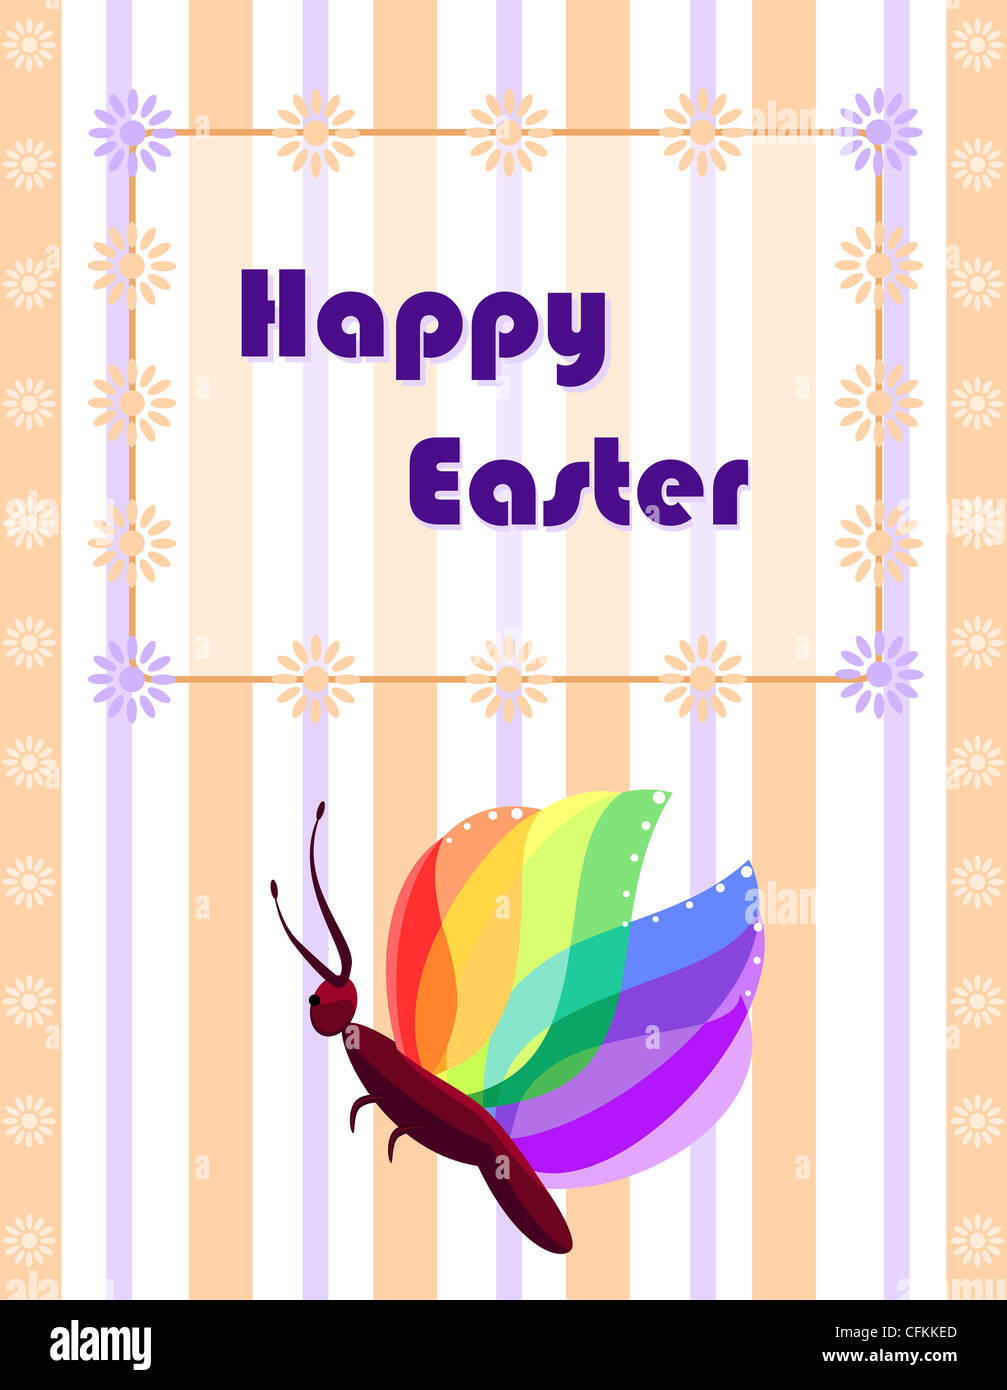 Easter Greeting Card Stock Photos Easter Greeting Card Stock